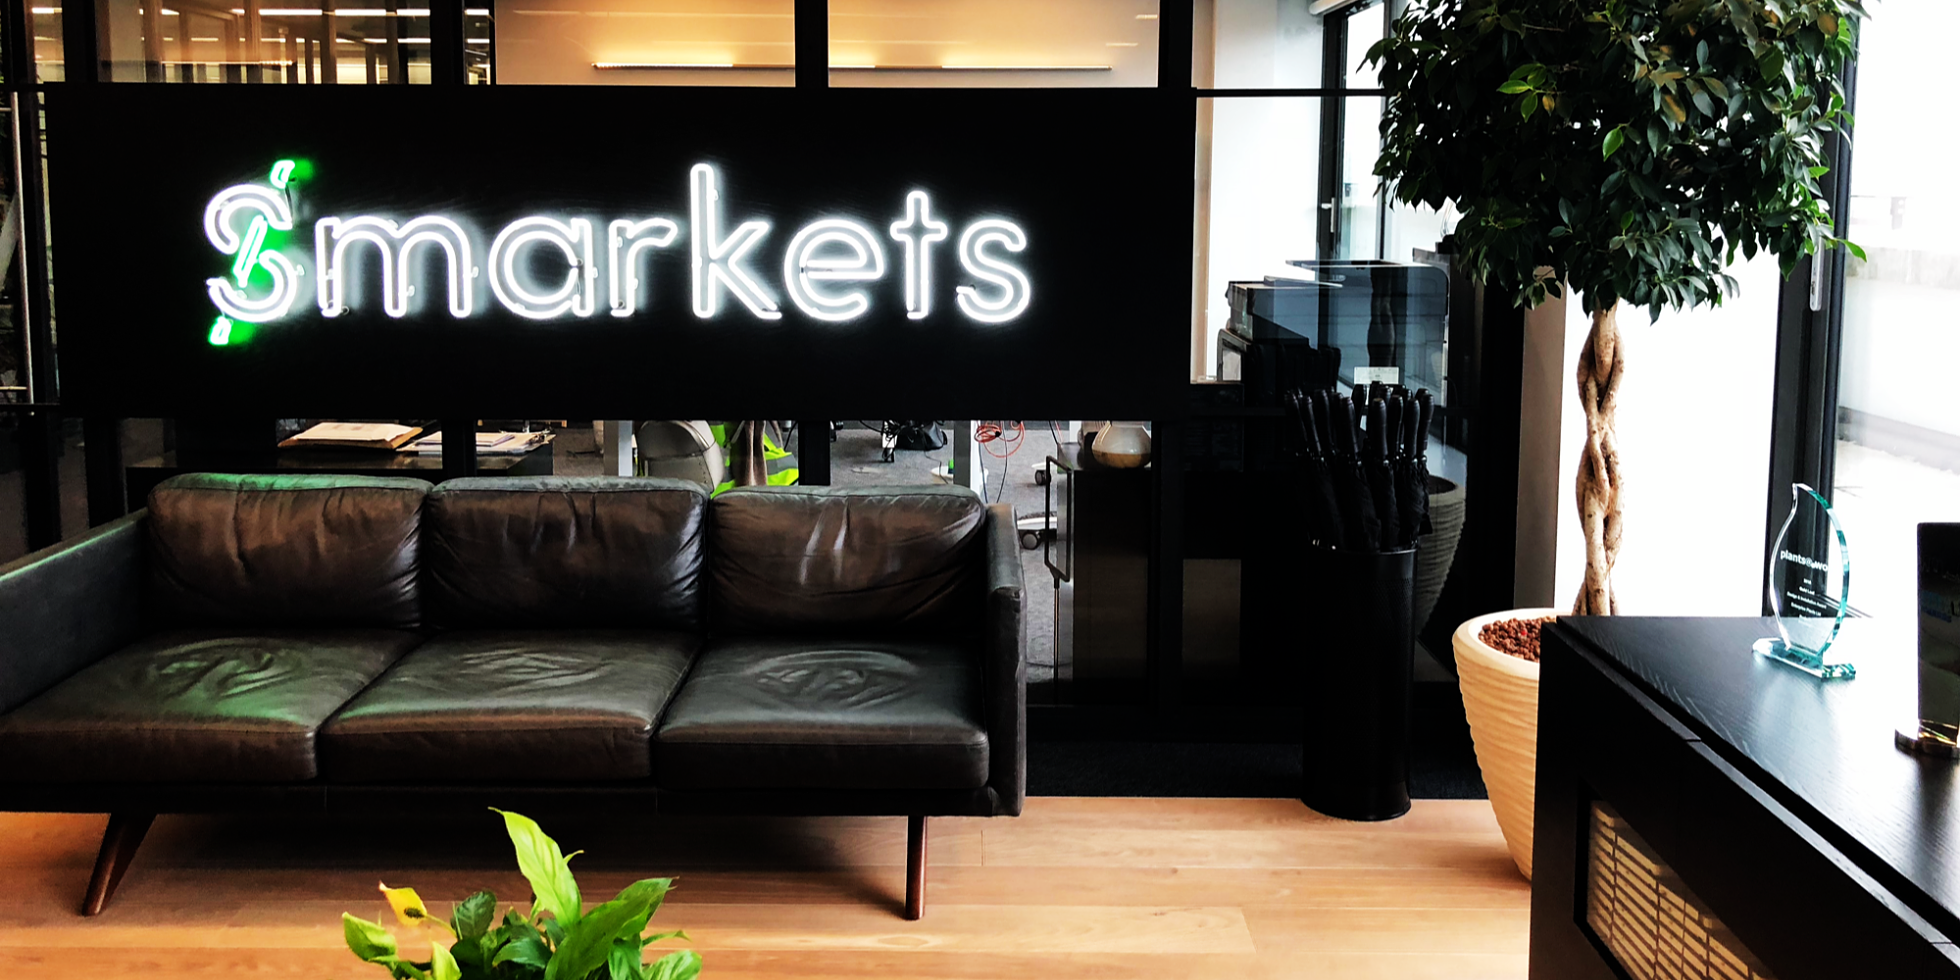 The Team brand and communications agency Designing smart employee practices and workplaces at Smarkets workplace design